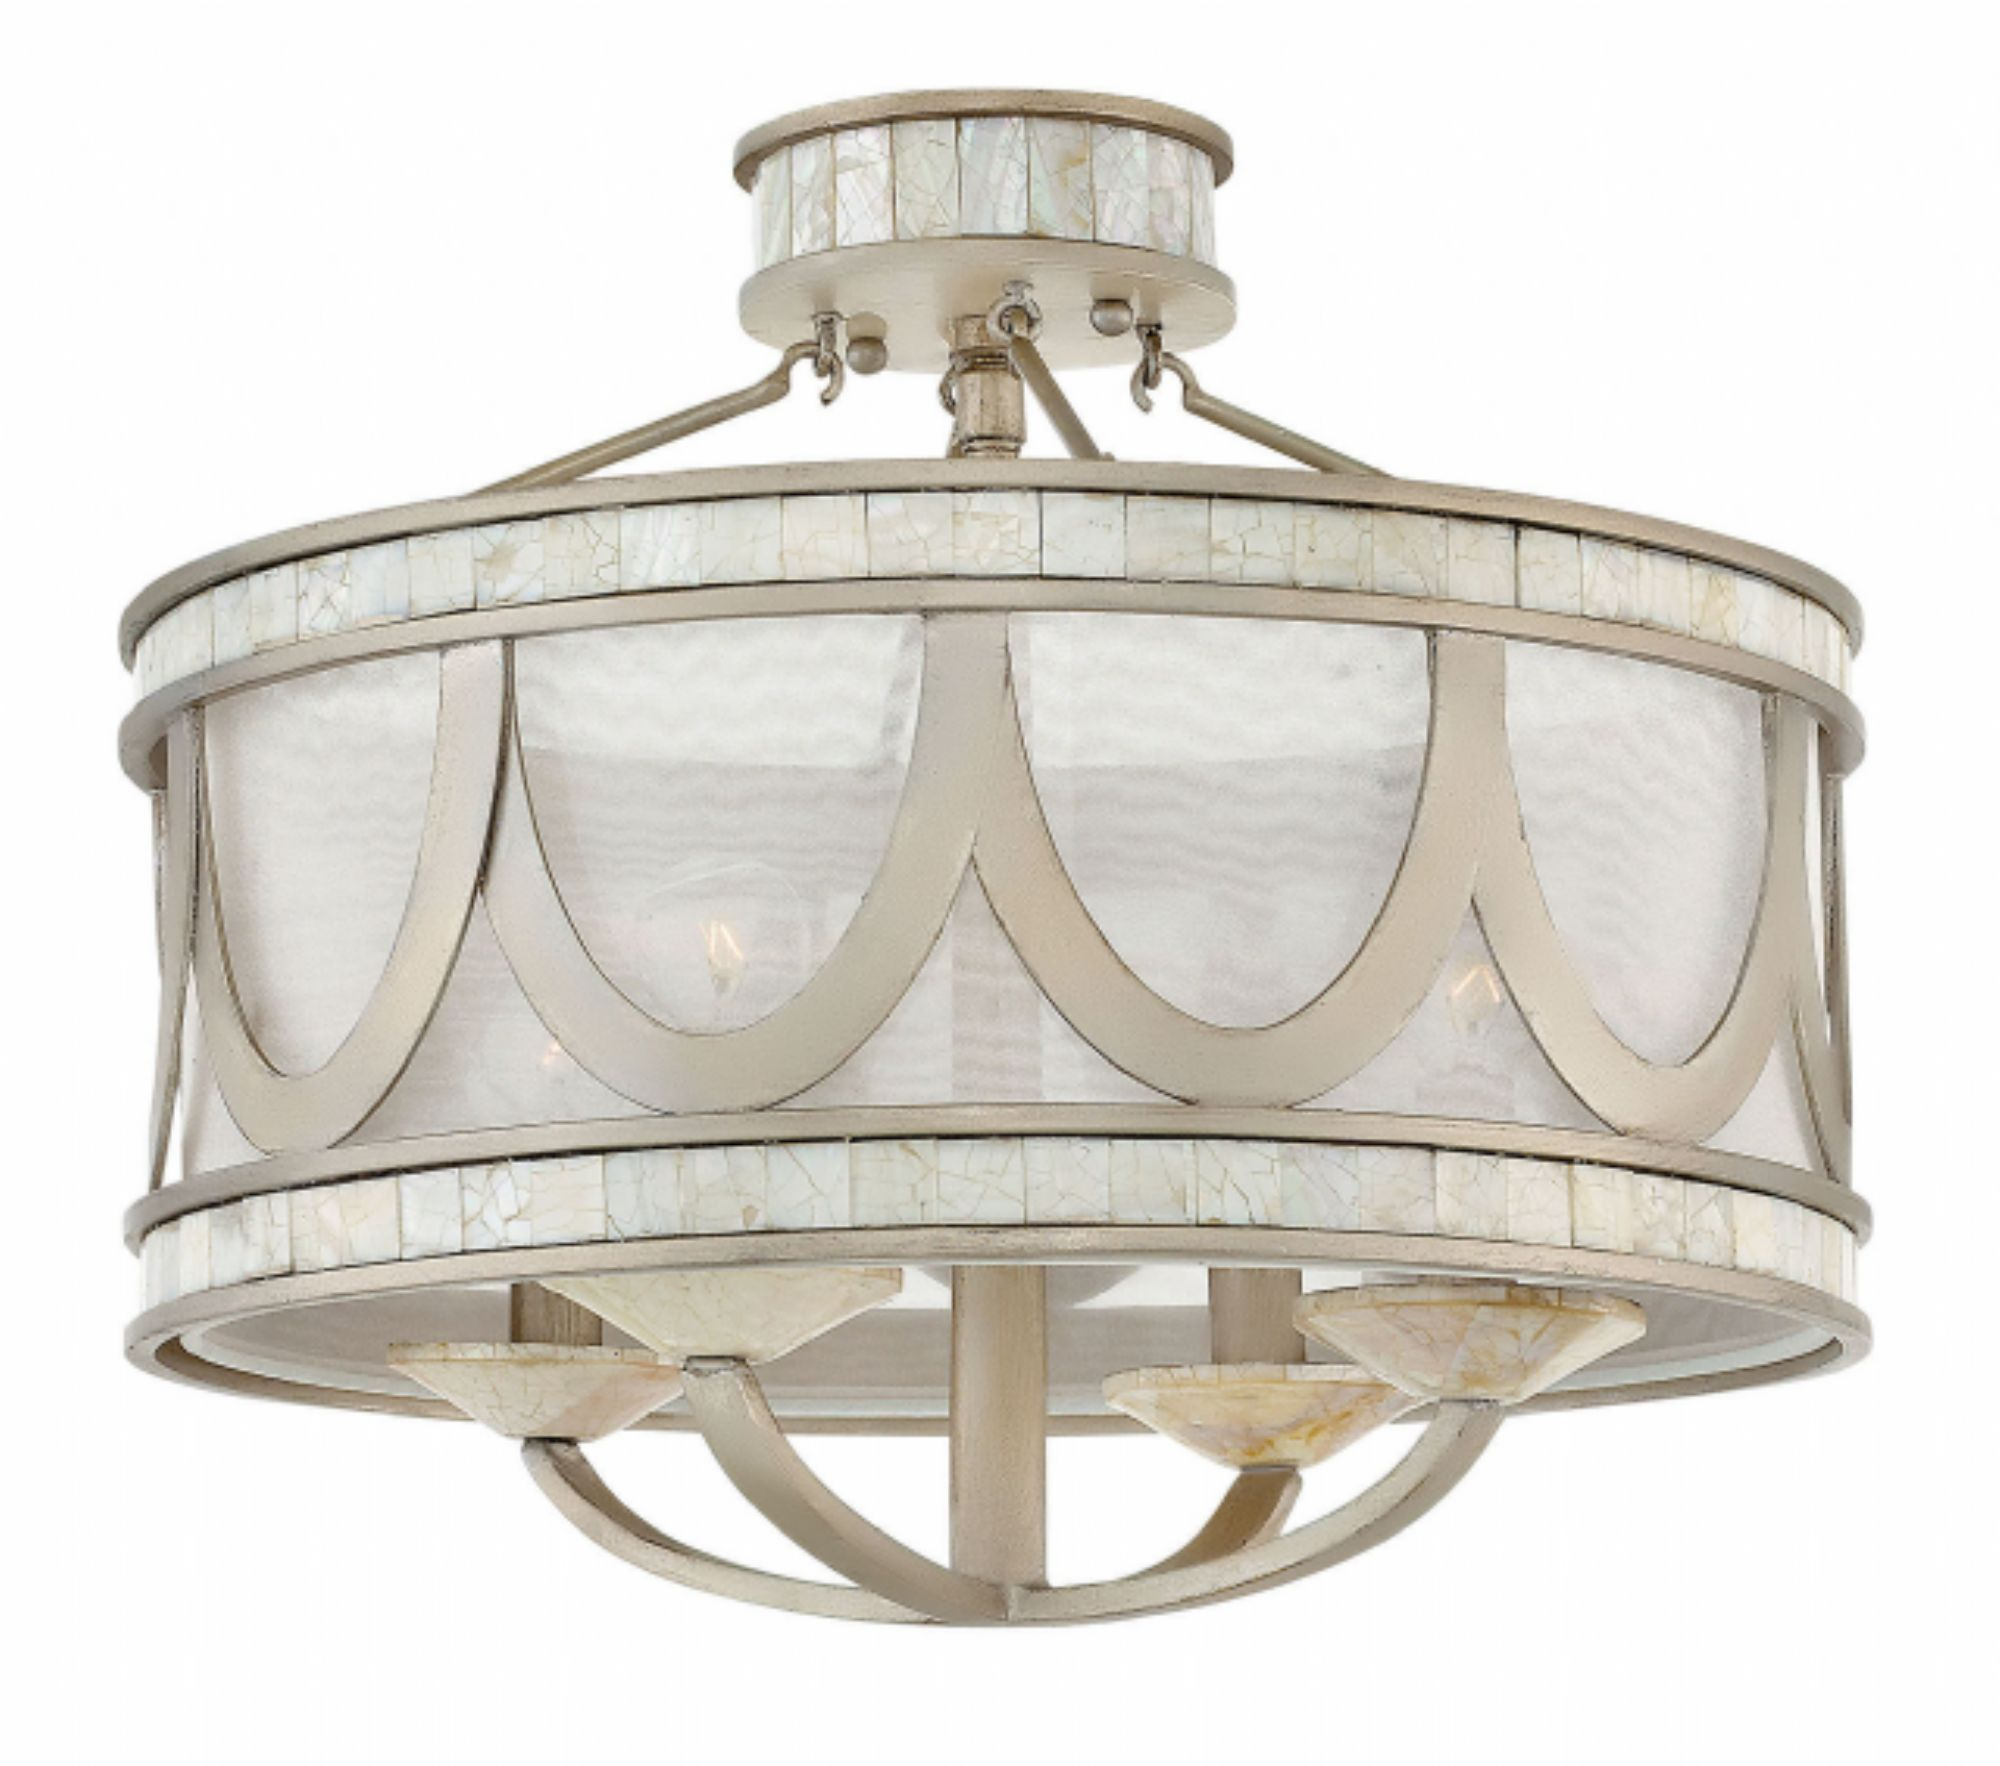 Hinkley Lighting Carries Many Champagne Gold Sirena Interior Hanging Light Fixtures That Can Be Used To